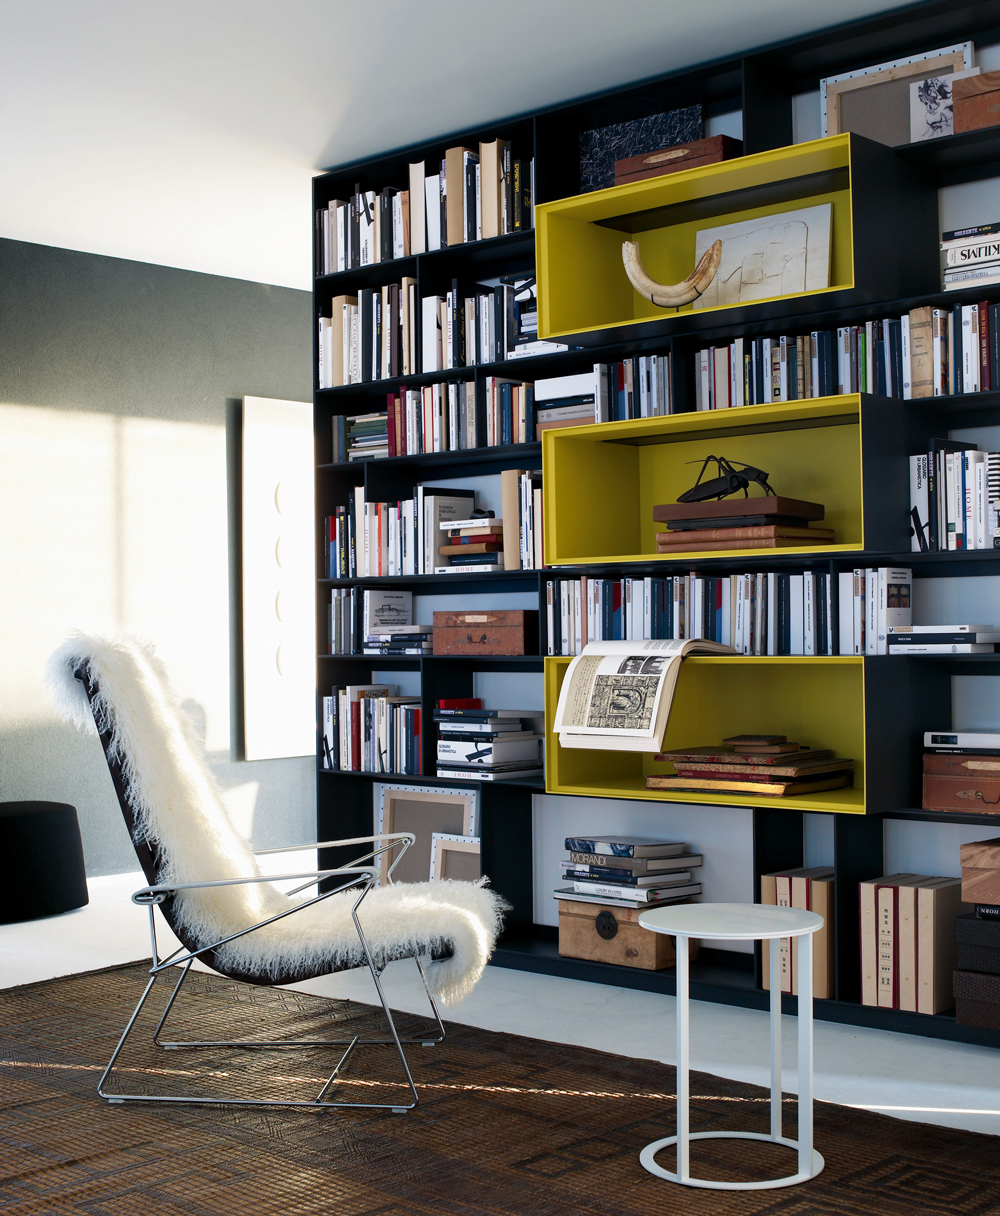 home_libraries_010